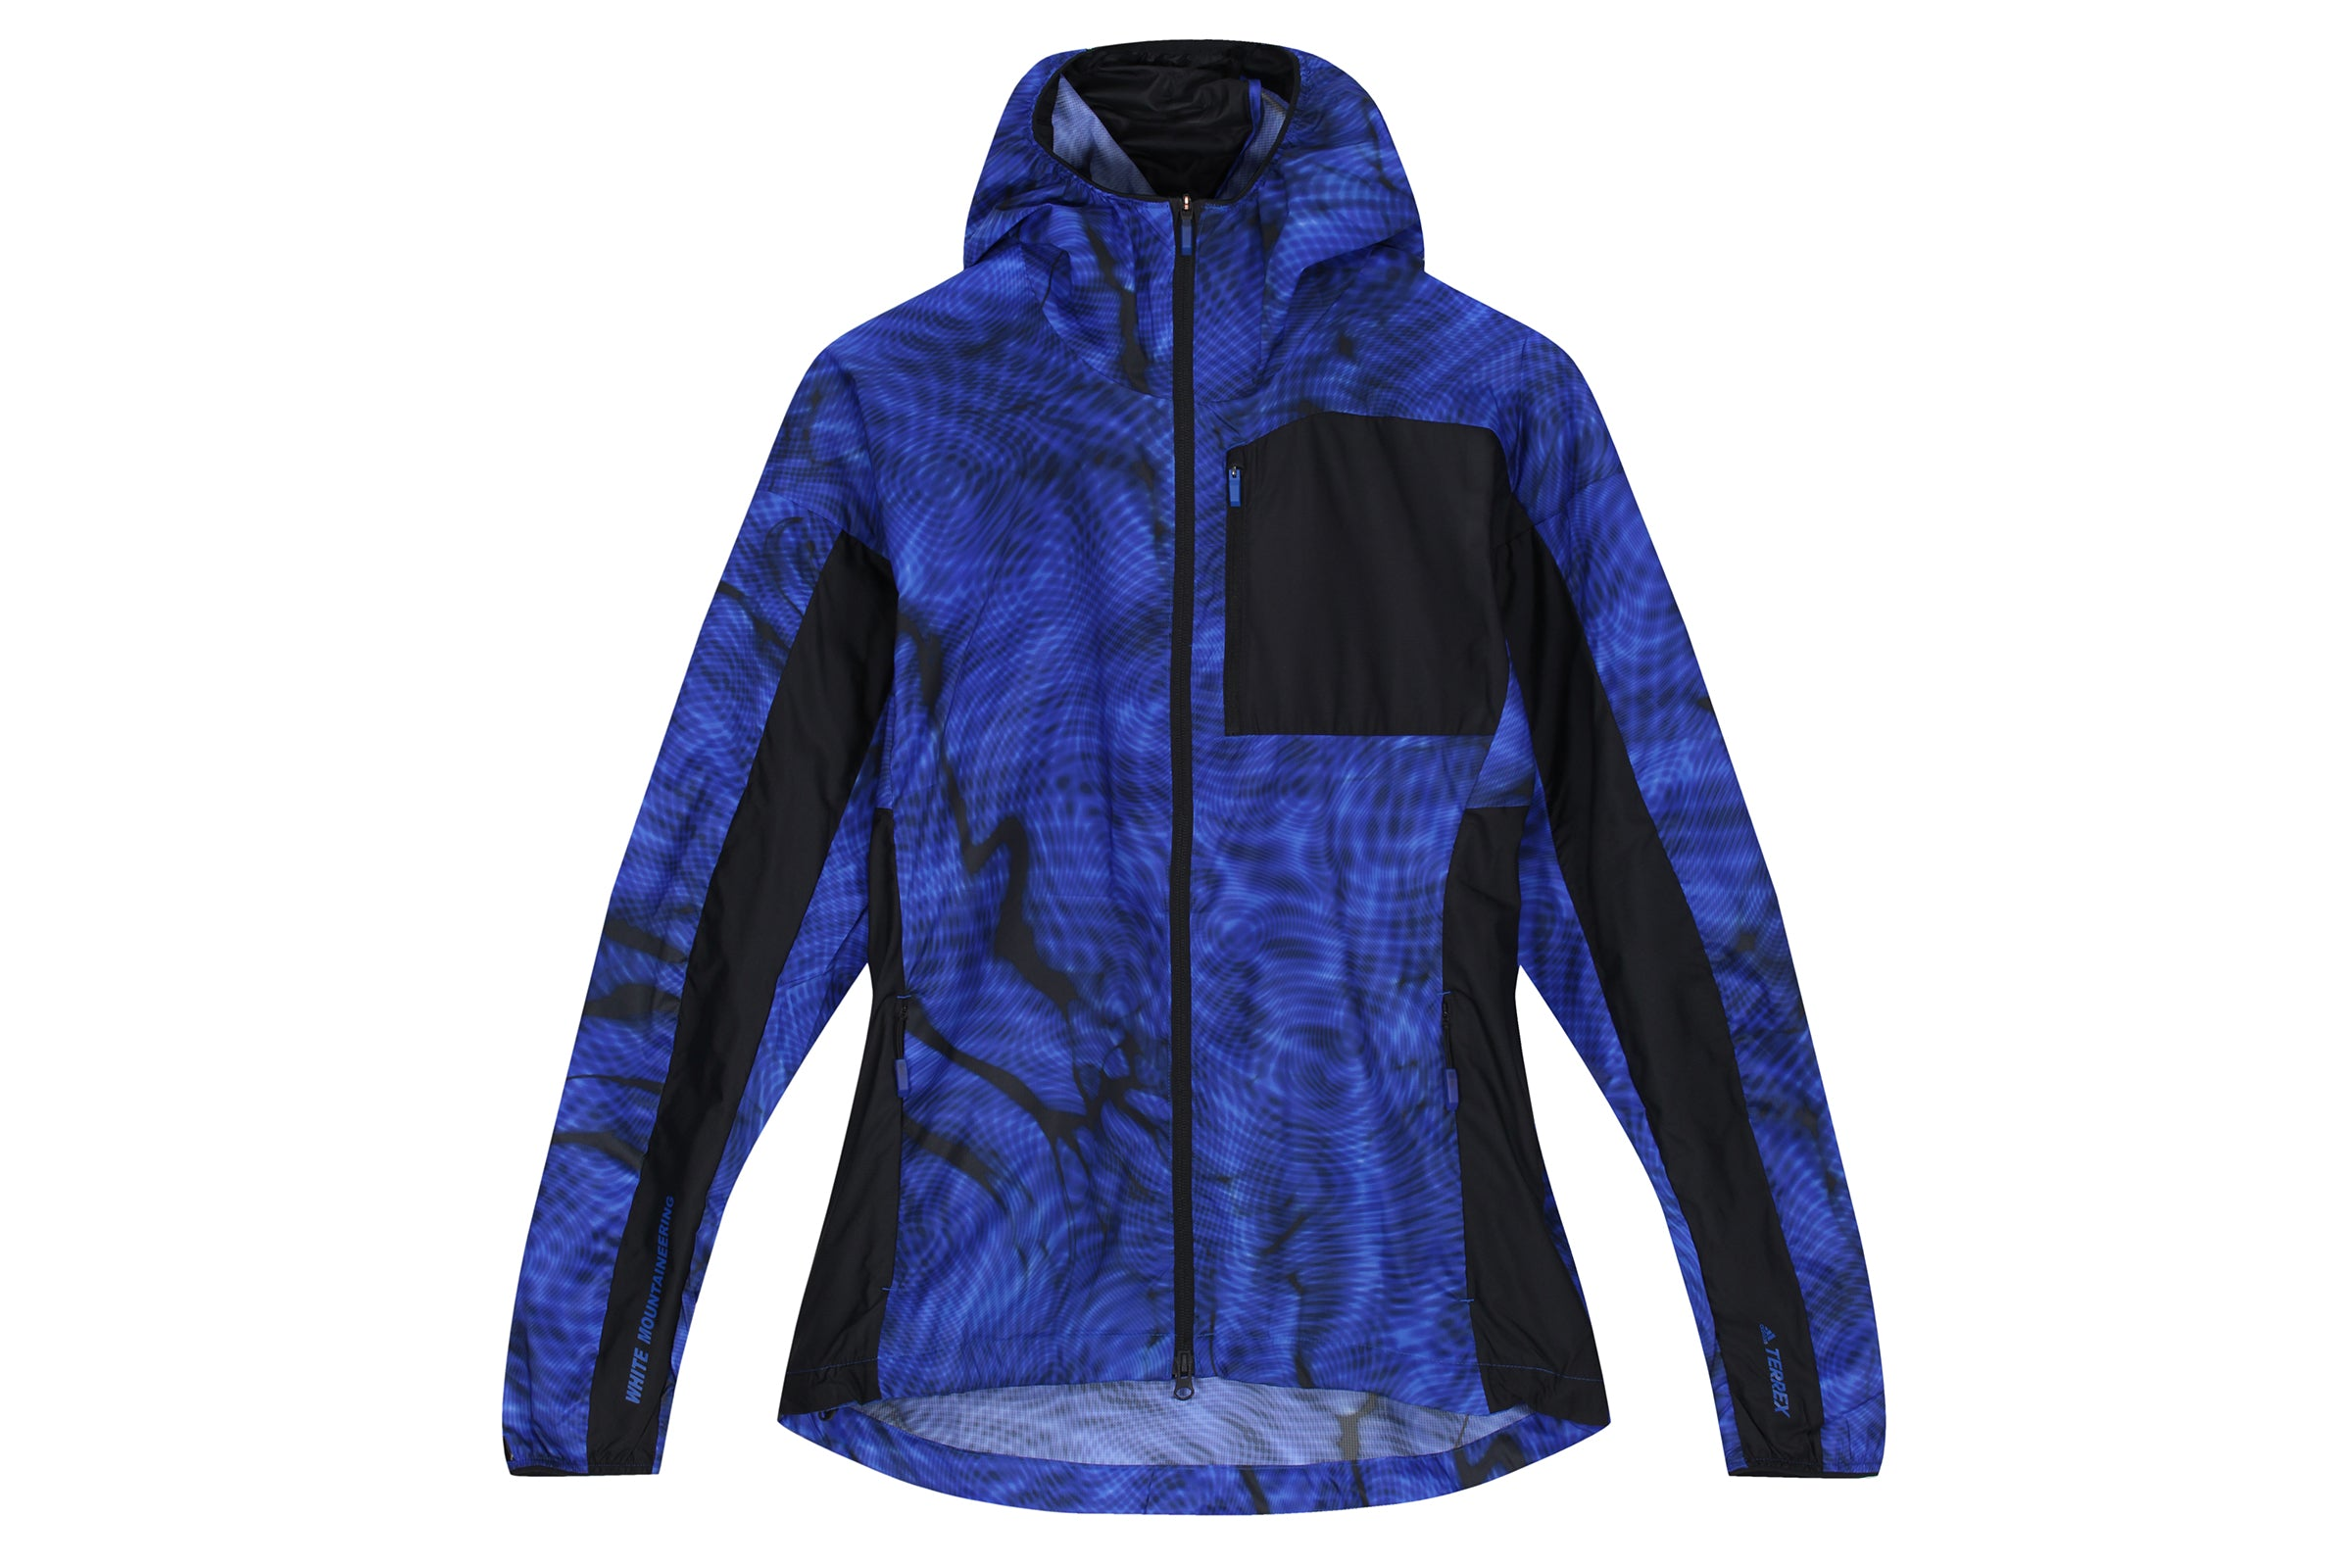 Adidas Terrex Wind Jacket x White Mountaineering